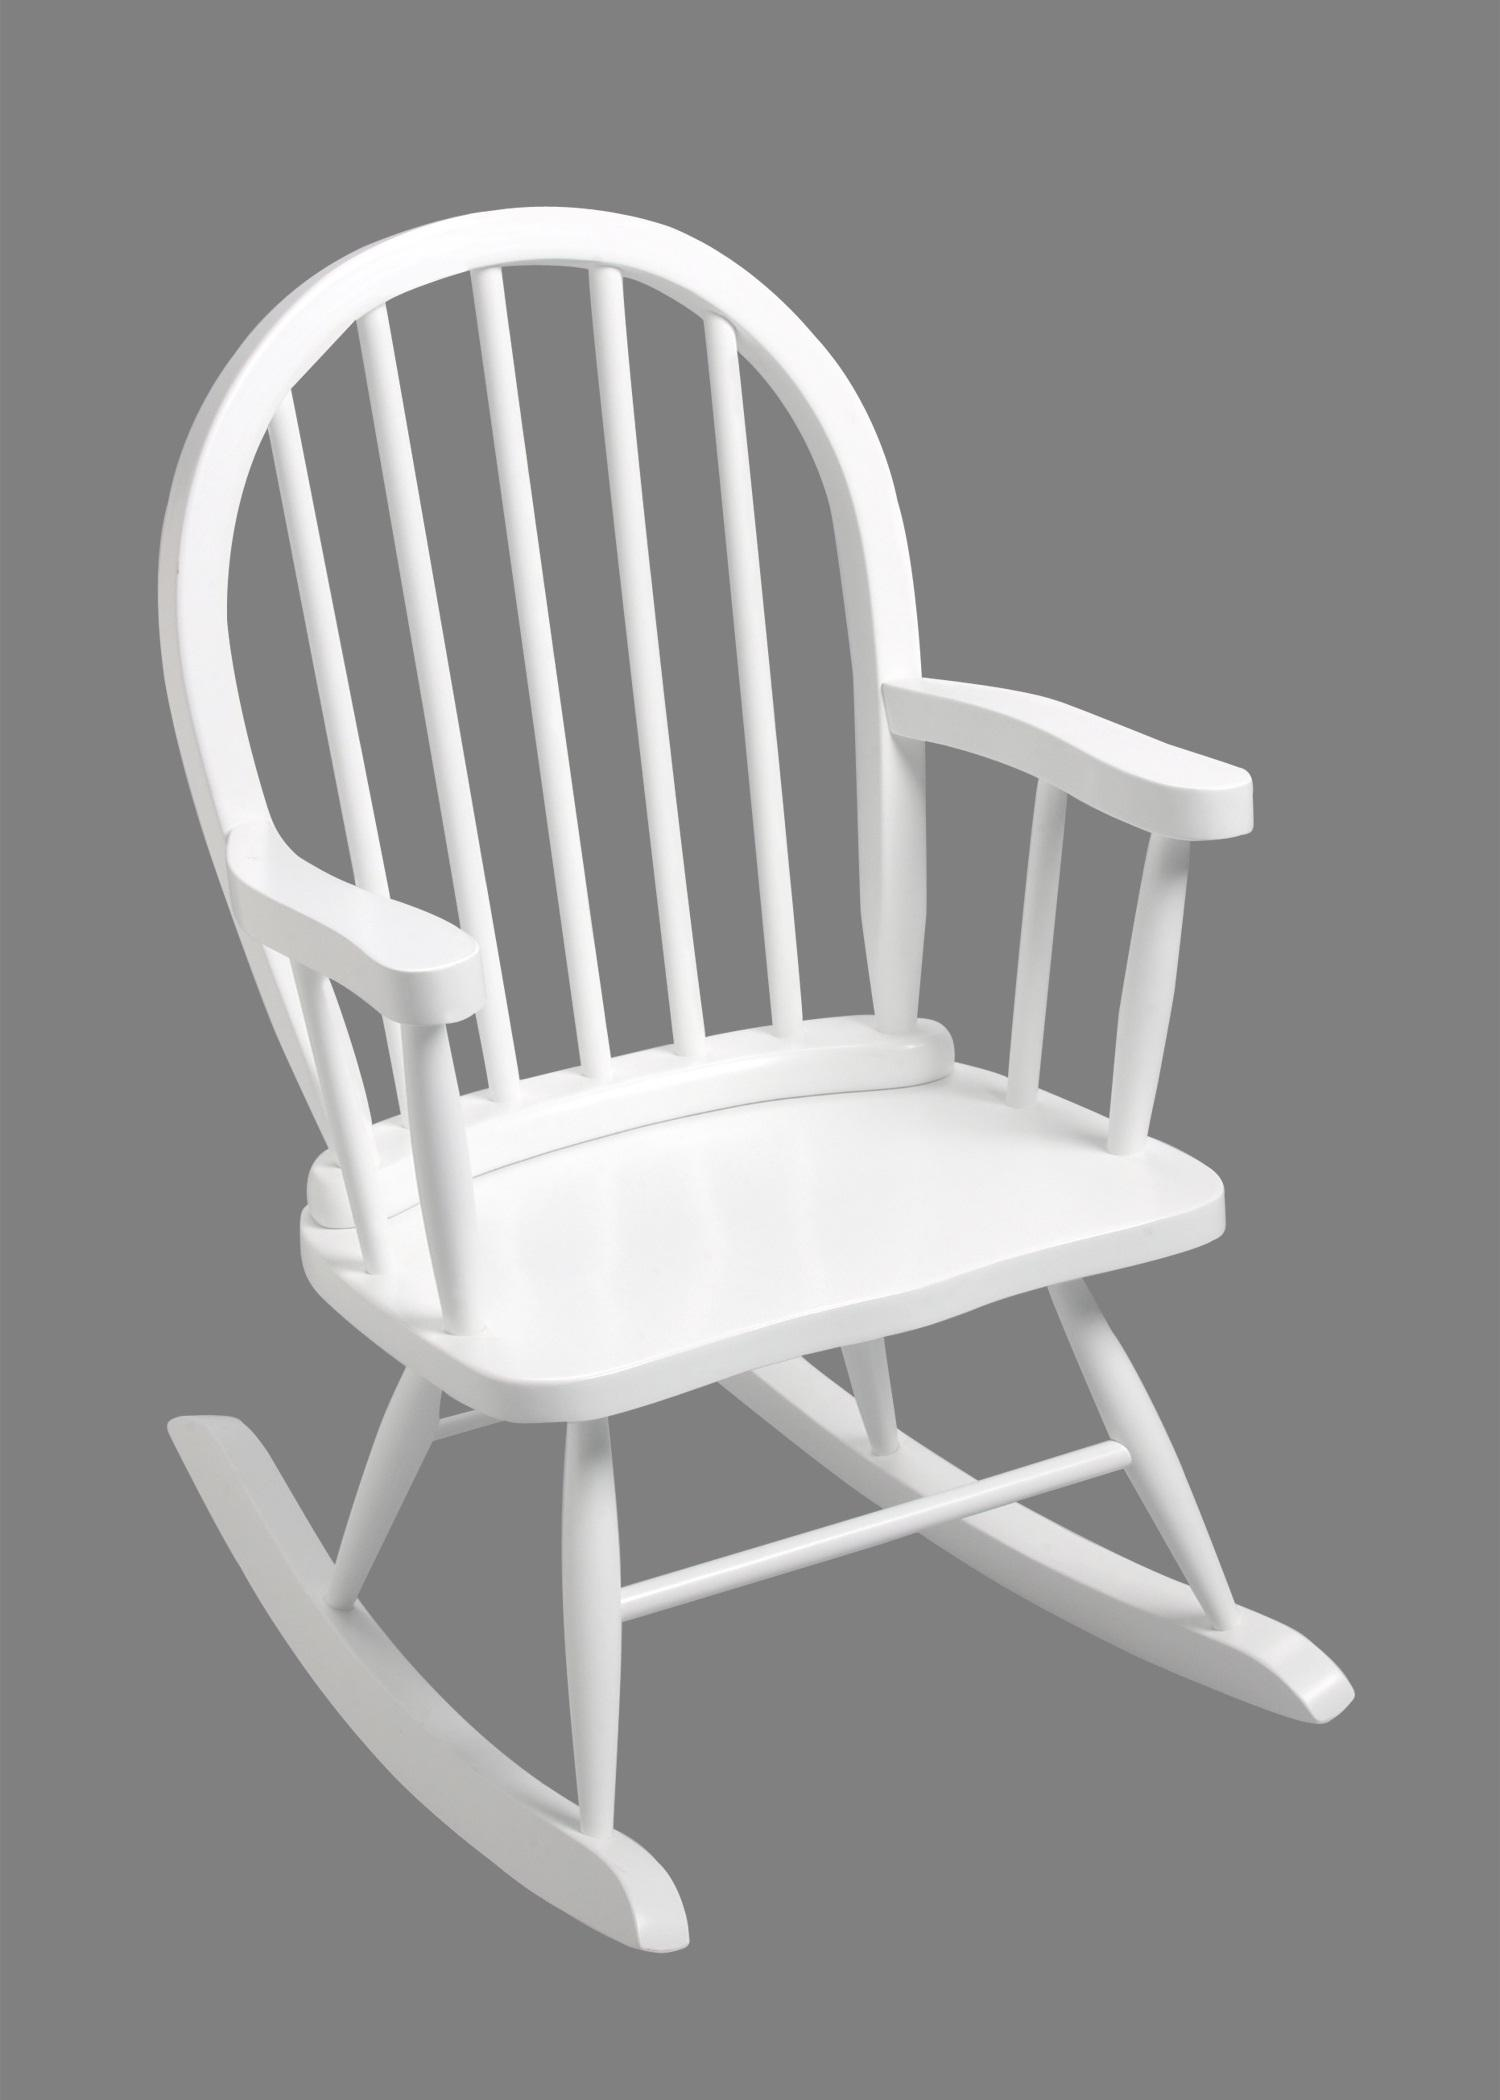 Image of: Modern Childrens Rocking Chair